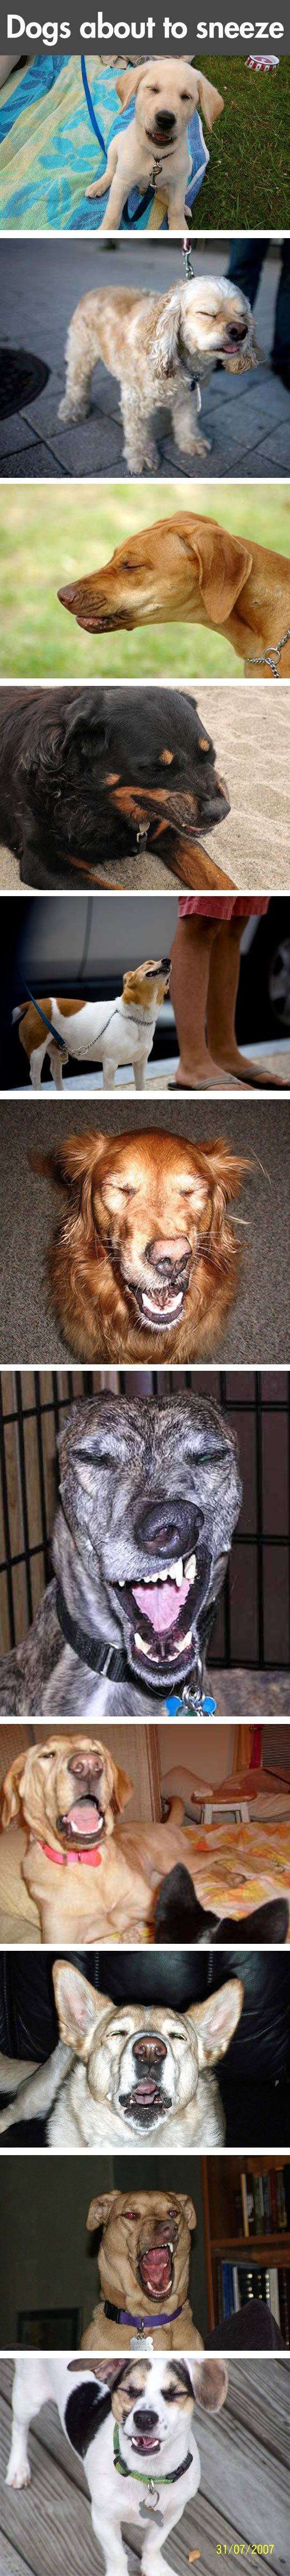 dogs about to sneeze.. This made me laugh harder than it should have...